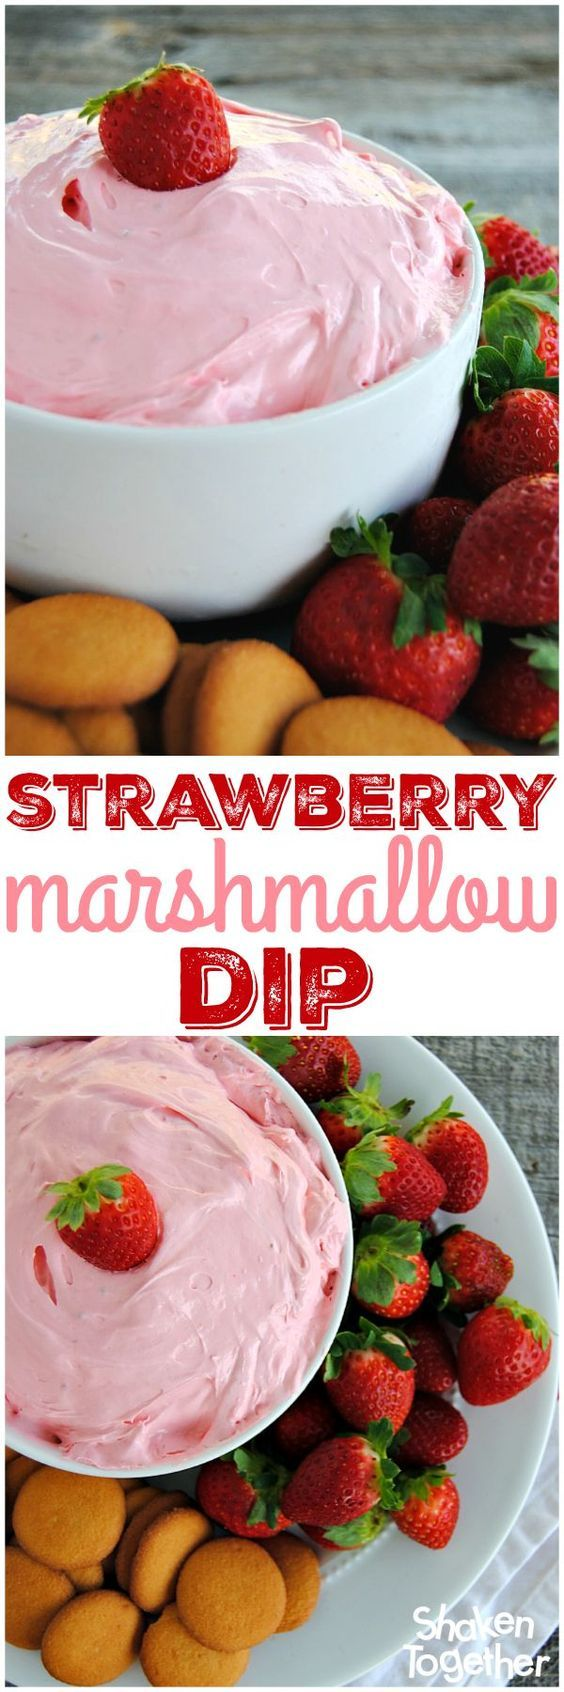 Strawberry Marshmallow Dip! 2 ingredients, sweet and fluffy - this is a big bowl of dippable deliciousness!